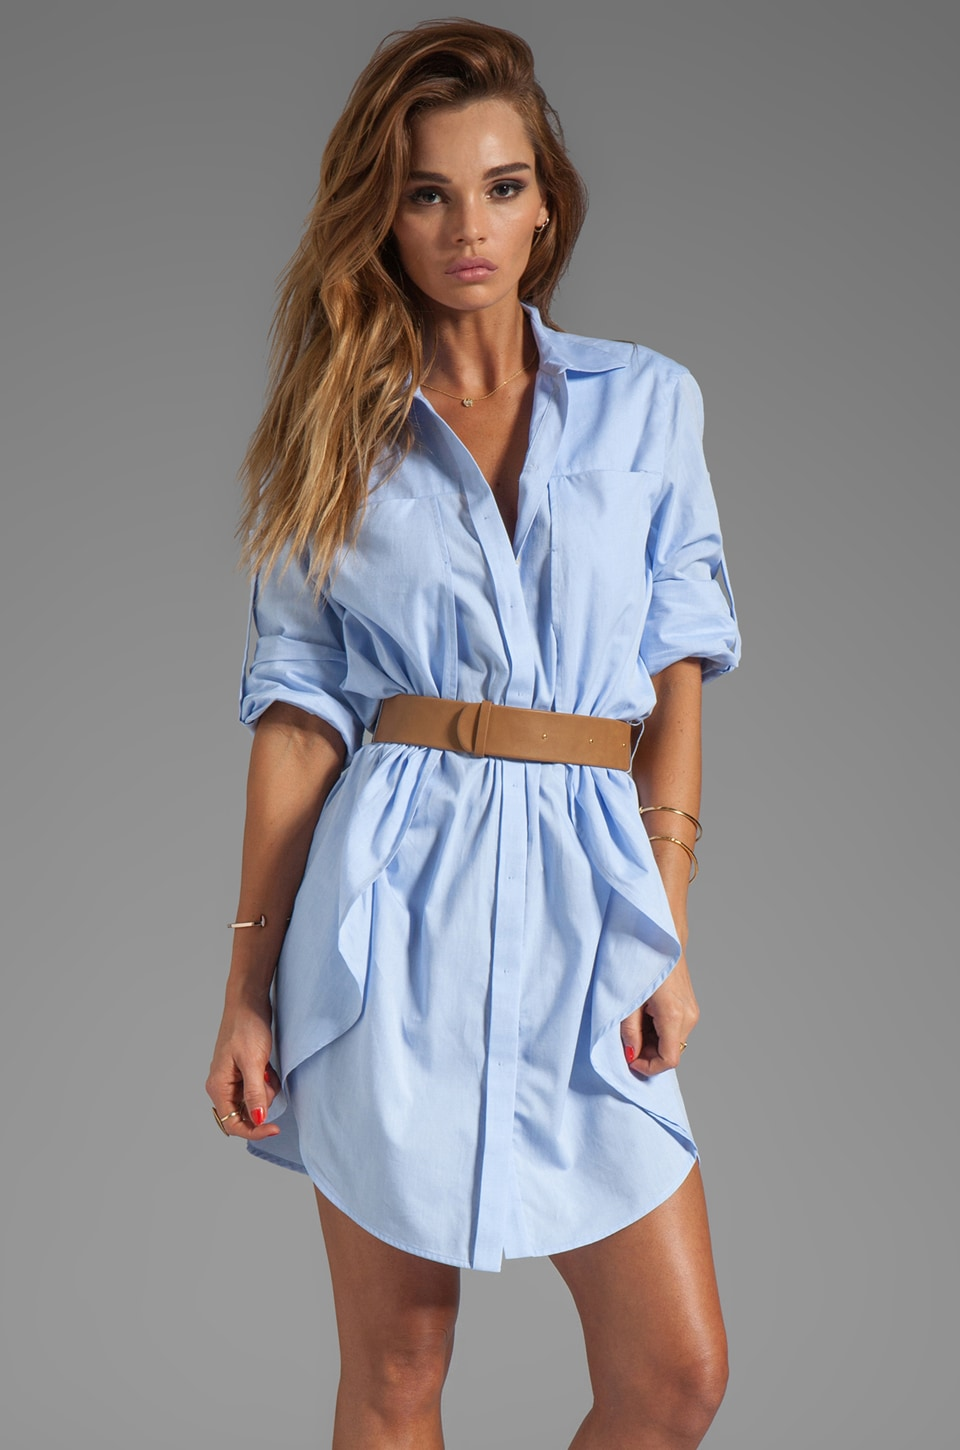 Belted Shirt Dress Ejn Dress